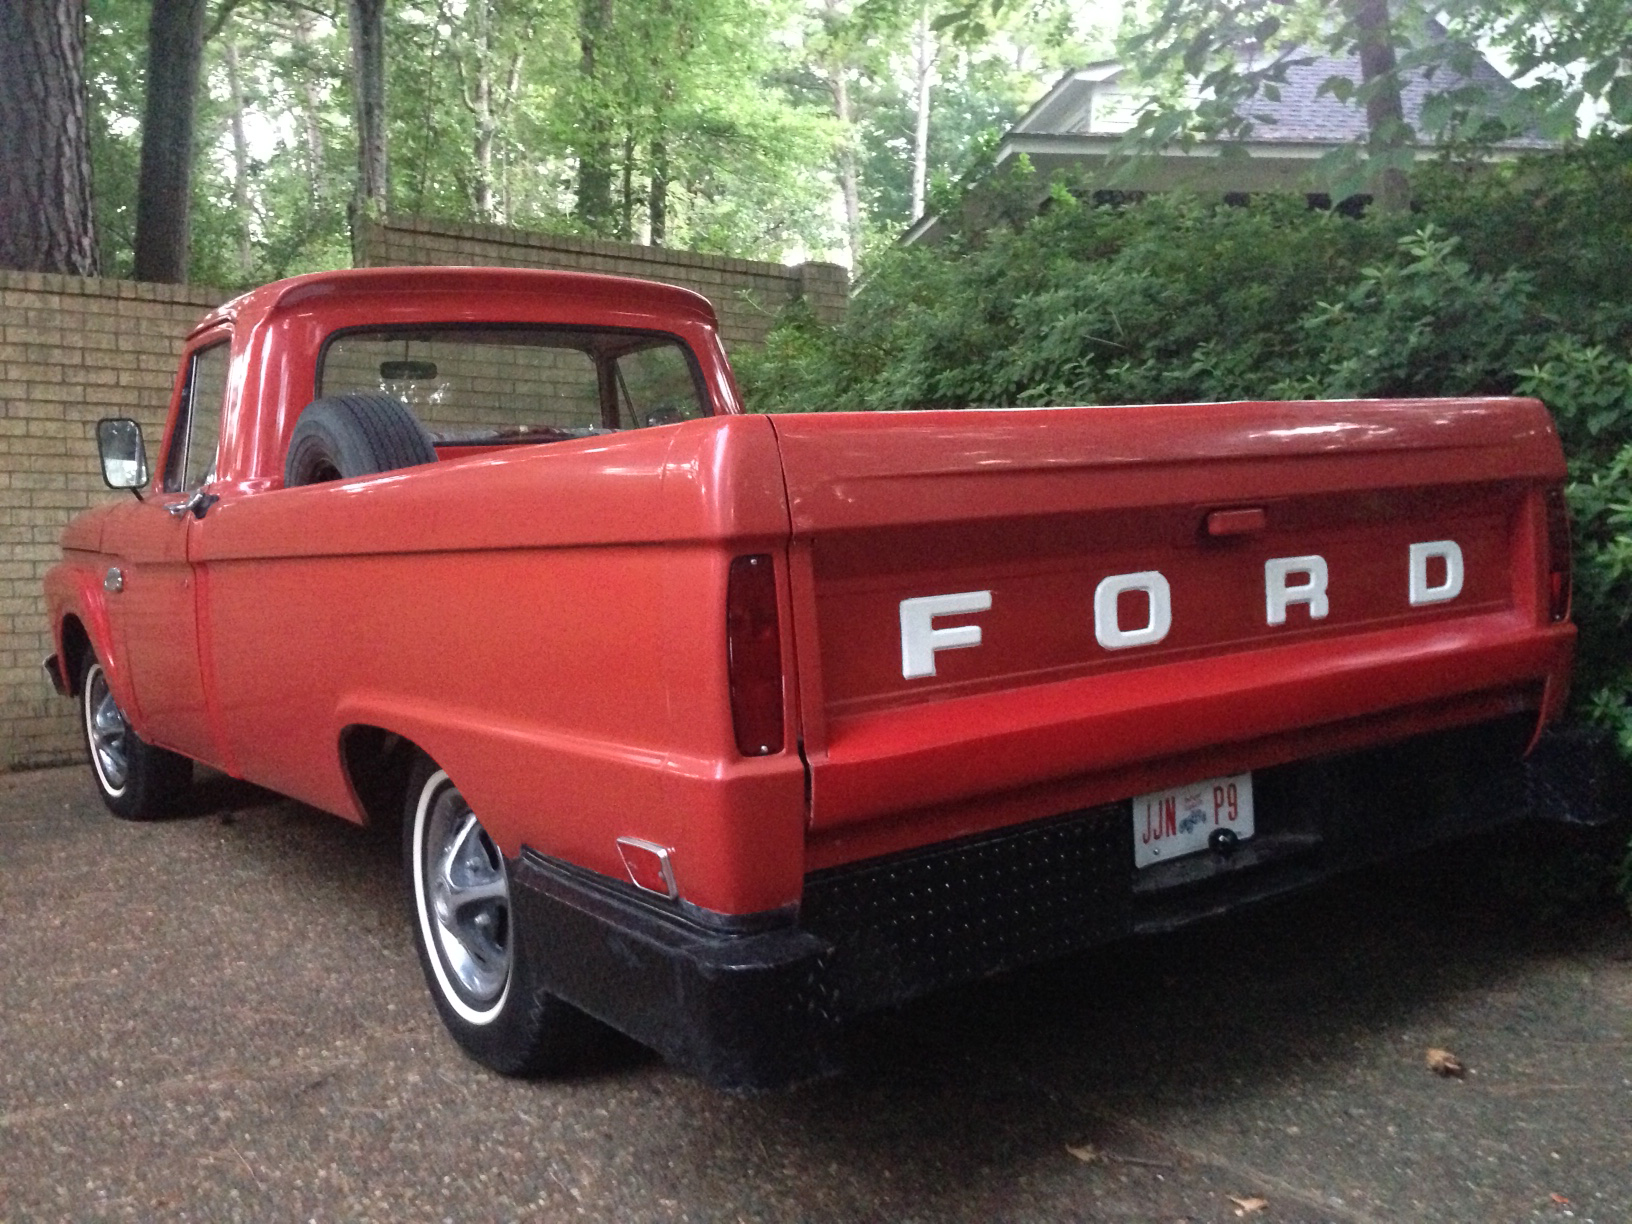 Gary Borders: Driving an old farm truck is a labor of love | WWNO